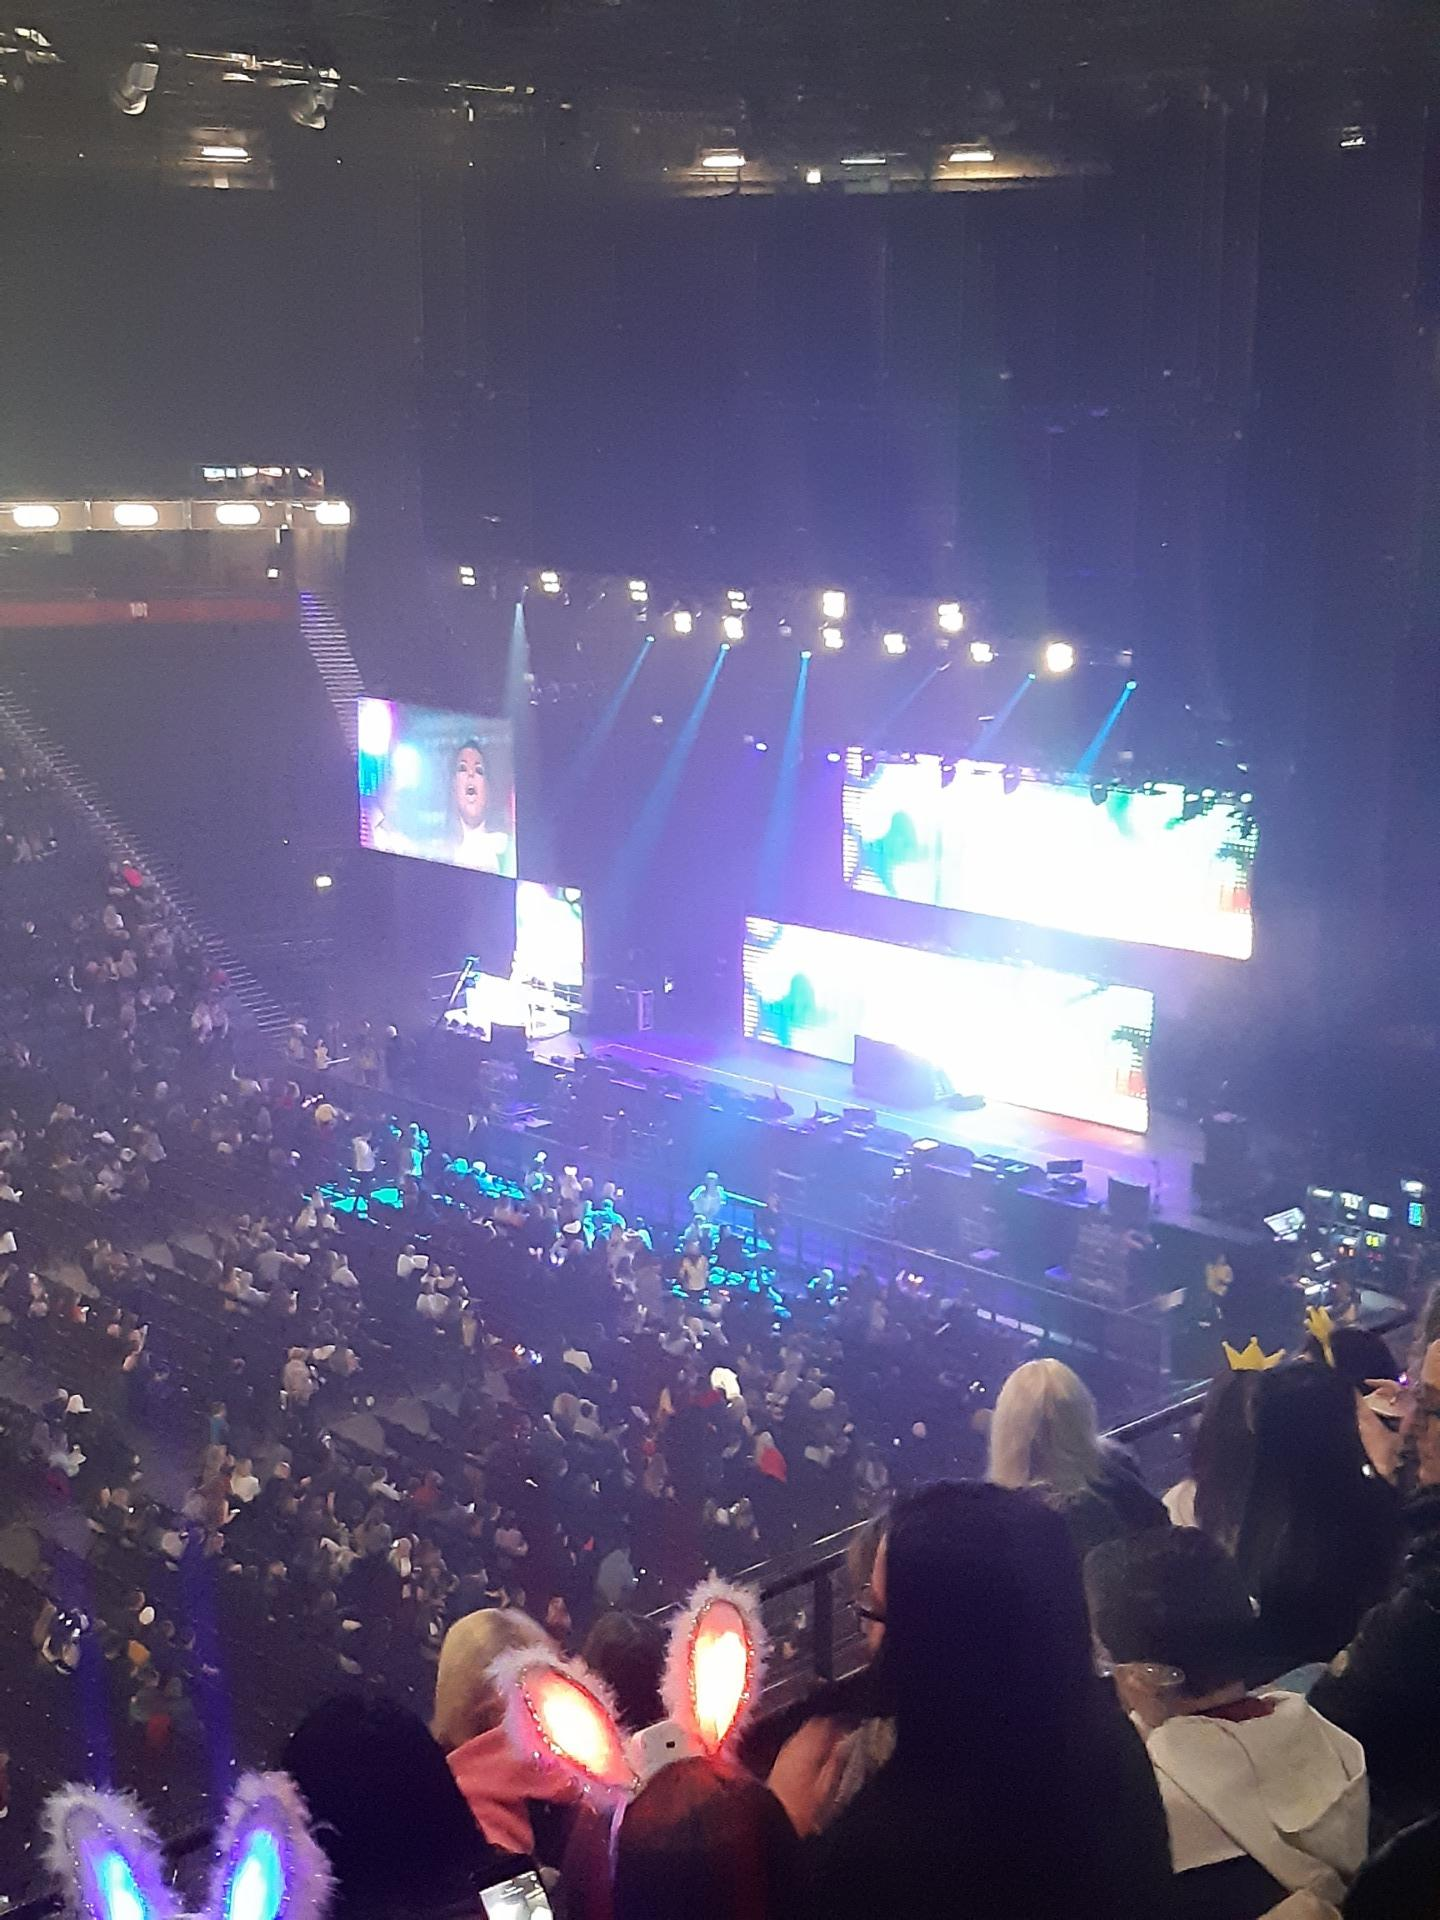 Manchester Arena Section 213 Row E Seat 7